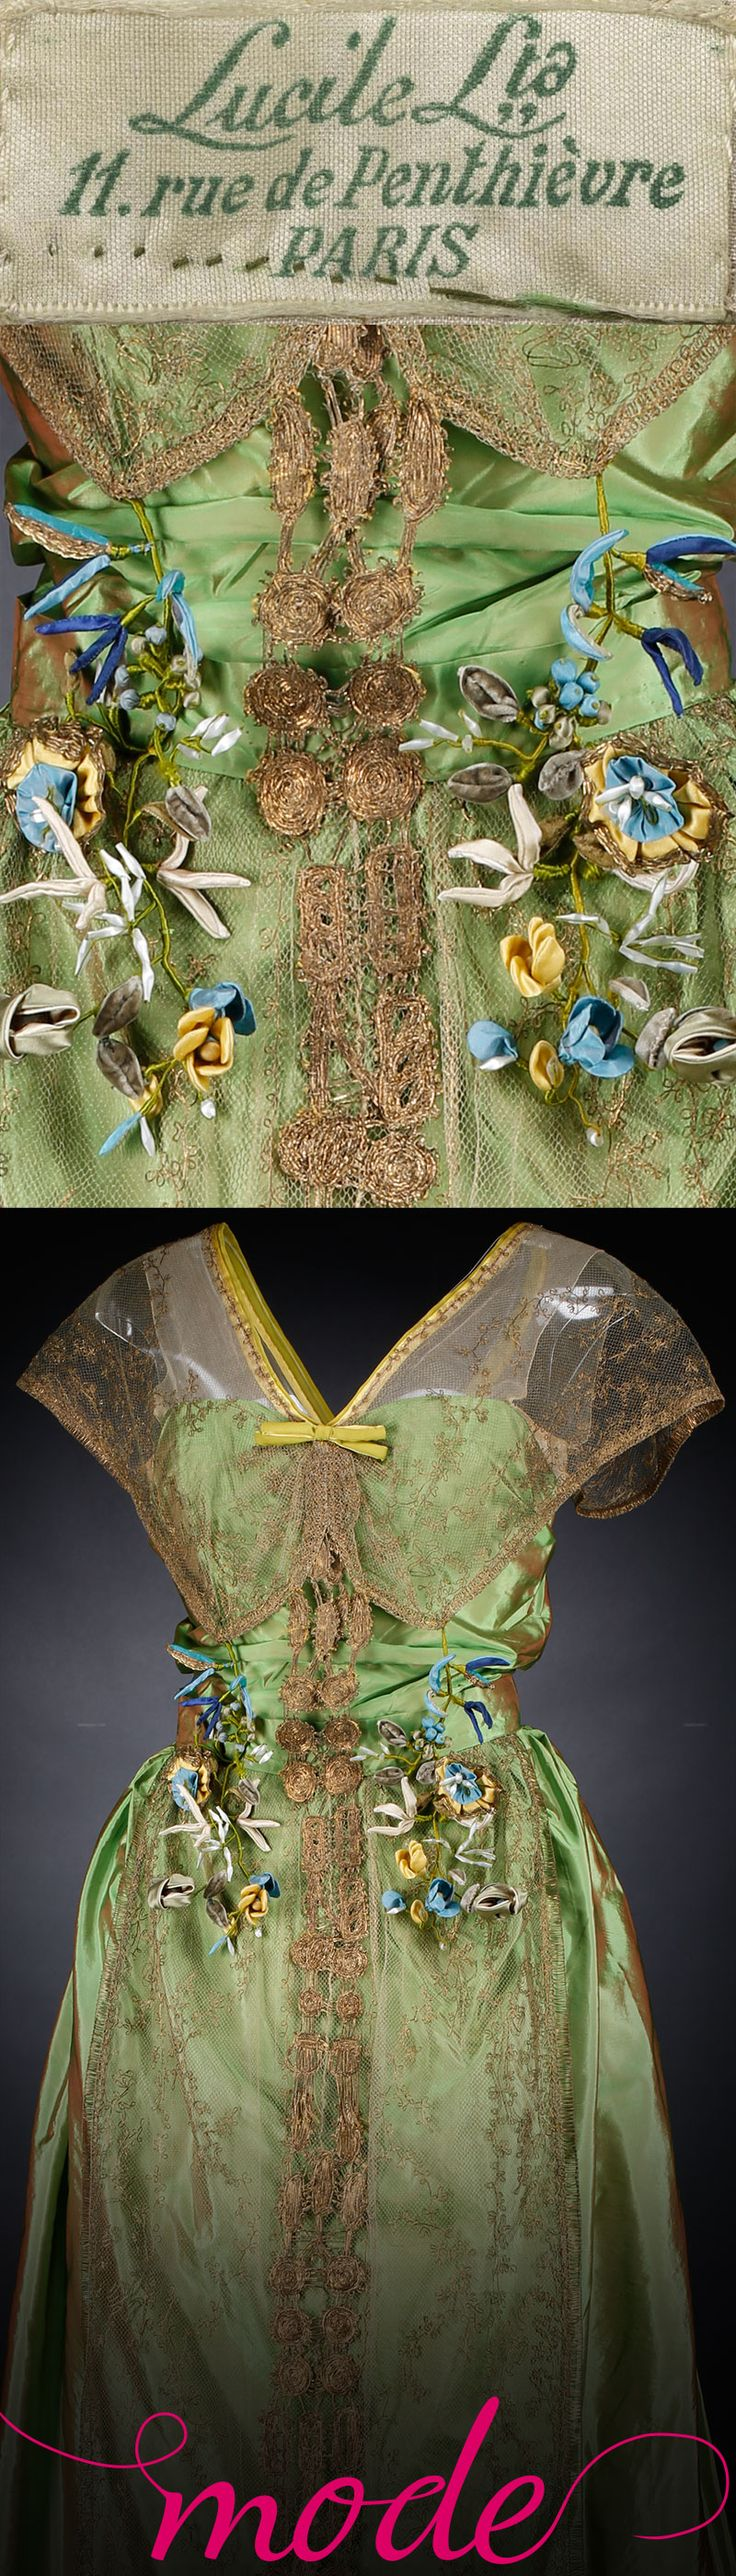 This gorgeous post-war evening dress from Maison Lucile captures the spirit of the age and the soul of its wearer, while the fresh spring colour signifies hope.  Find out more about this dress and many more at http://www.nms.ac.uk/mode. Mode is your personal, portable guide to the new Fashion and Style gallery at the National Museum of Scotland. Luxuriate in couture details with close-up images and 360 views, and discover sumptuous fabrics, bespoke craftsmanship and cutting-edge style.